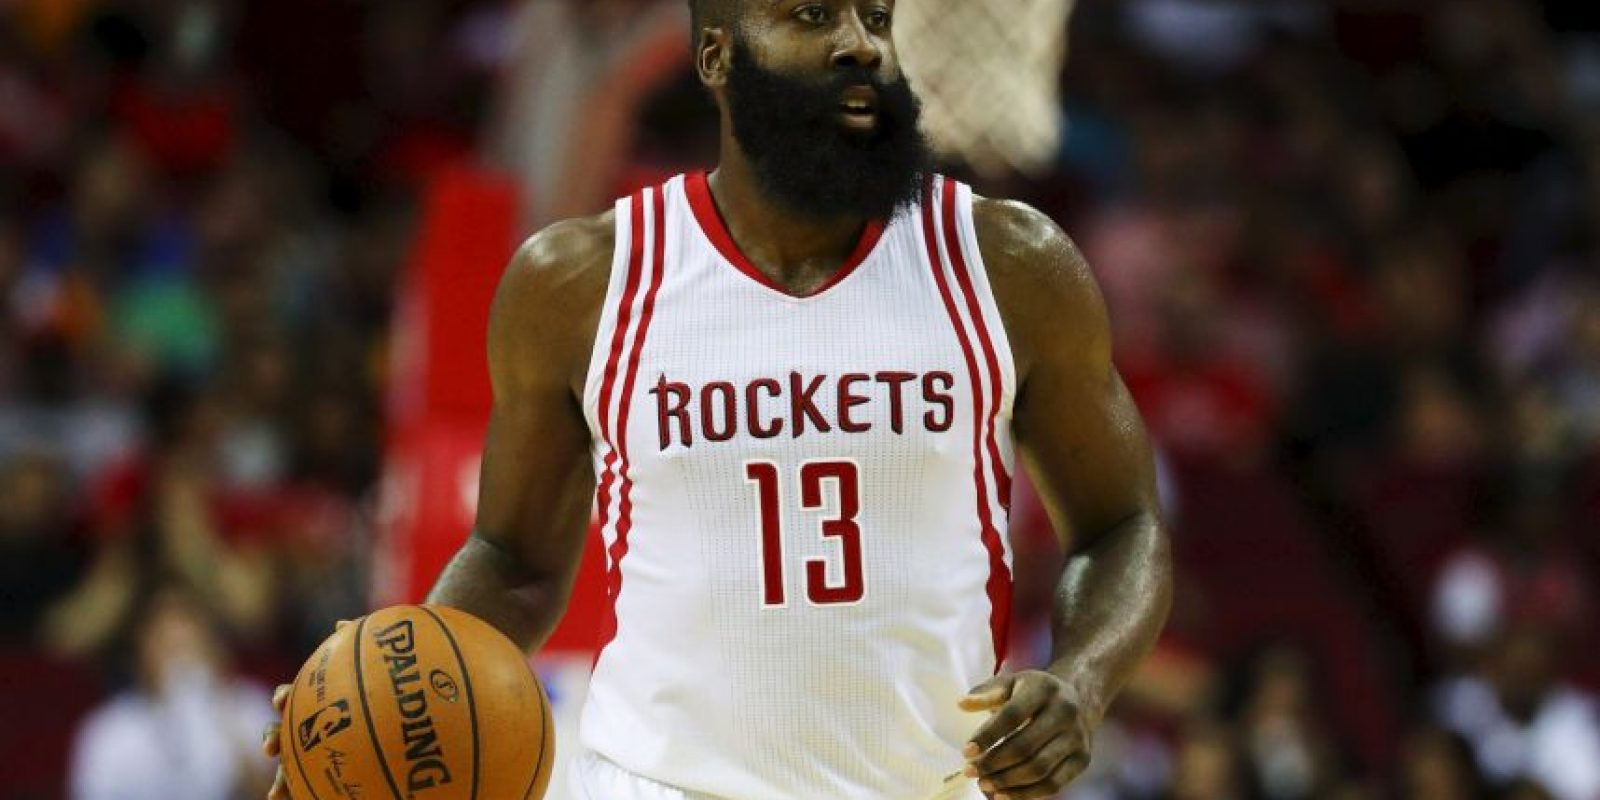 2.-James Harden (Houston Rockets) – 26.540.100